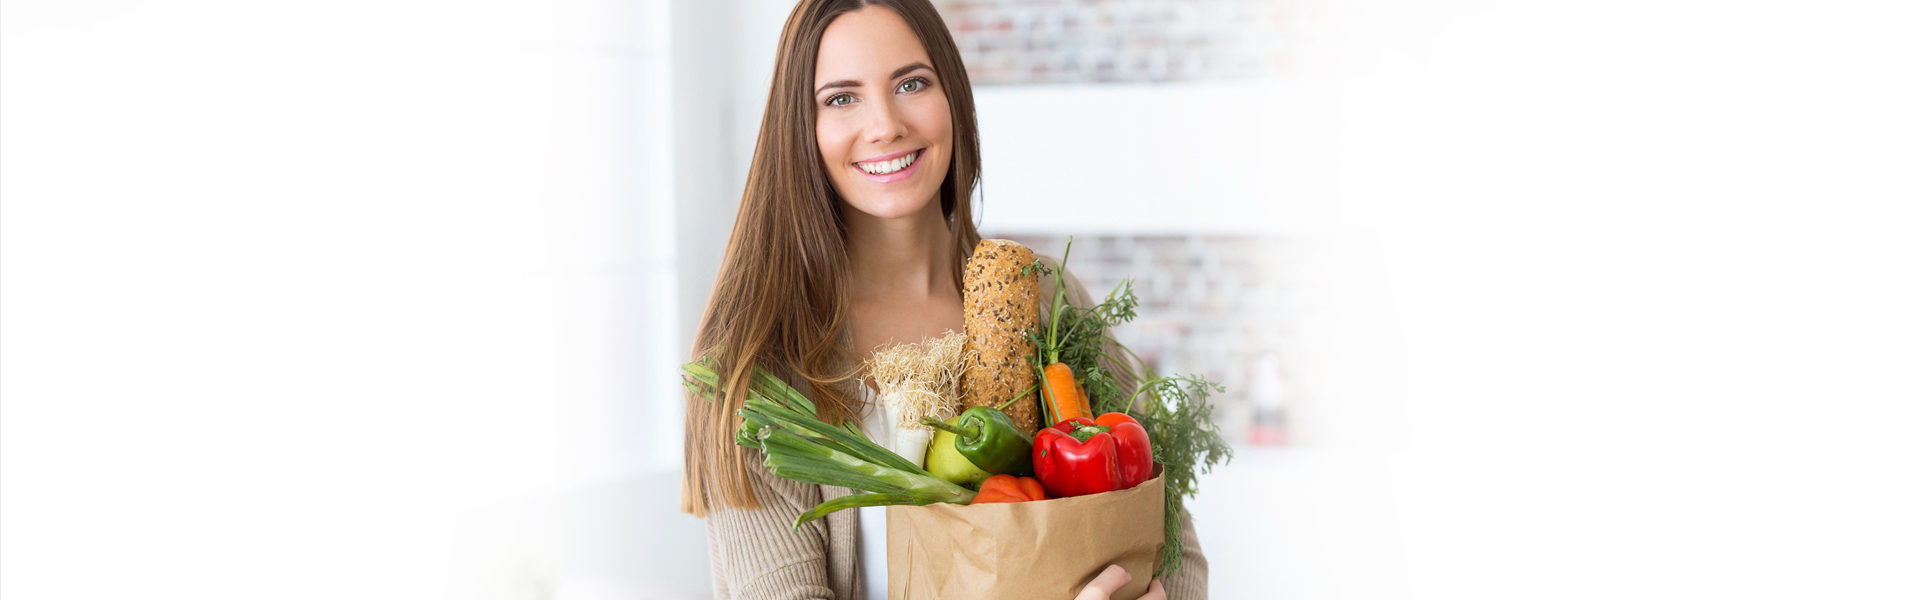 Nutritional Counseling in Ellicott City, MD, with a Holistic Nutrition Counselor